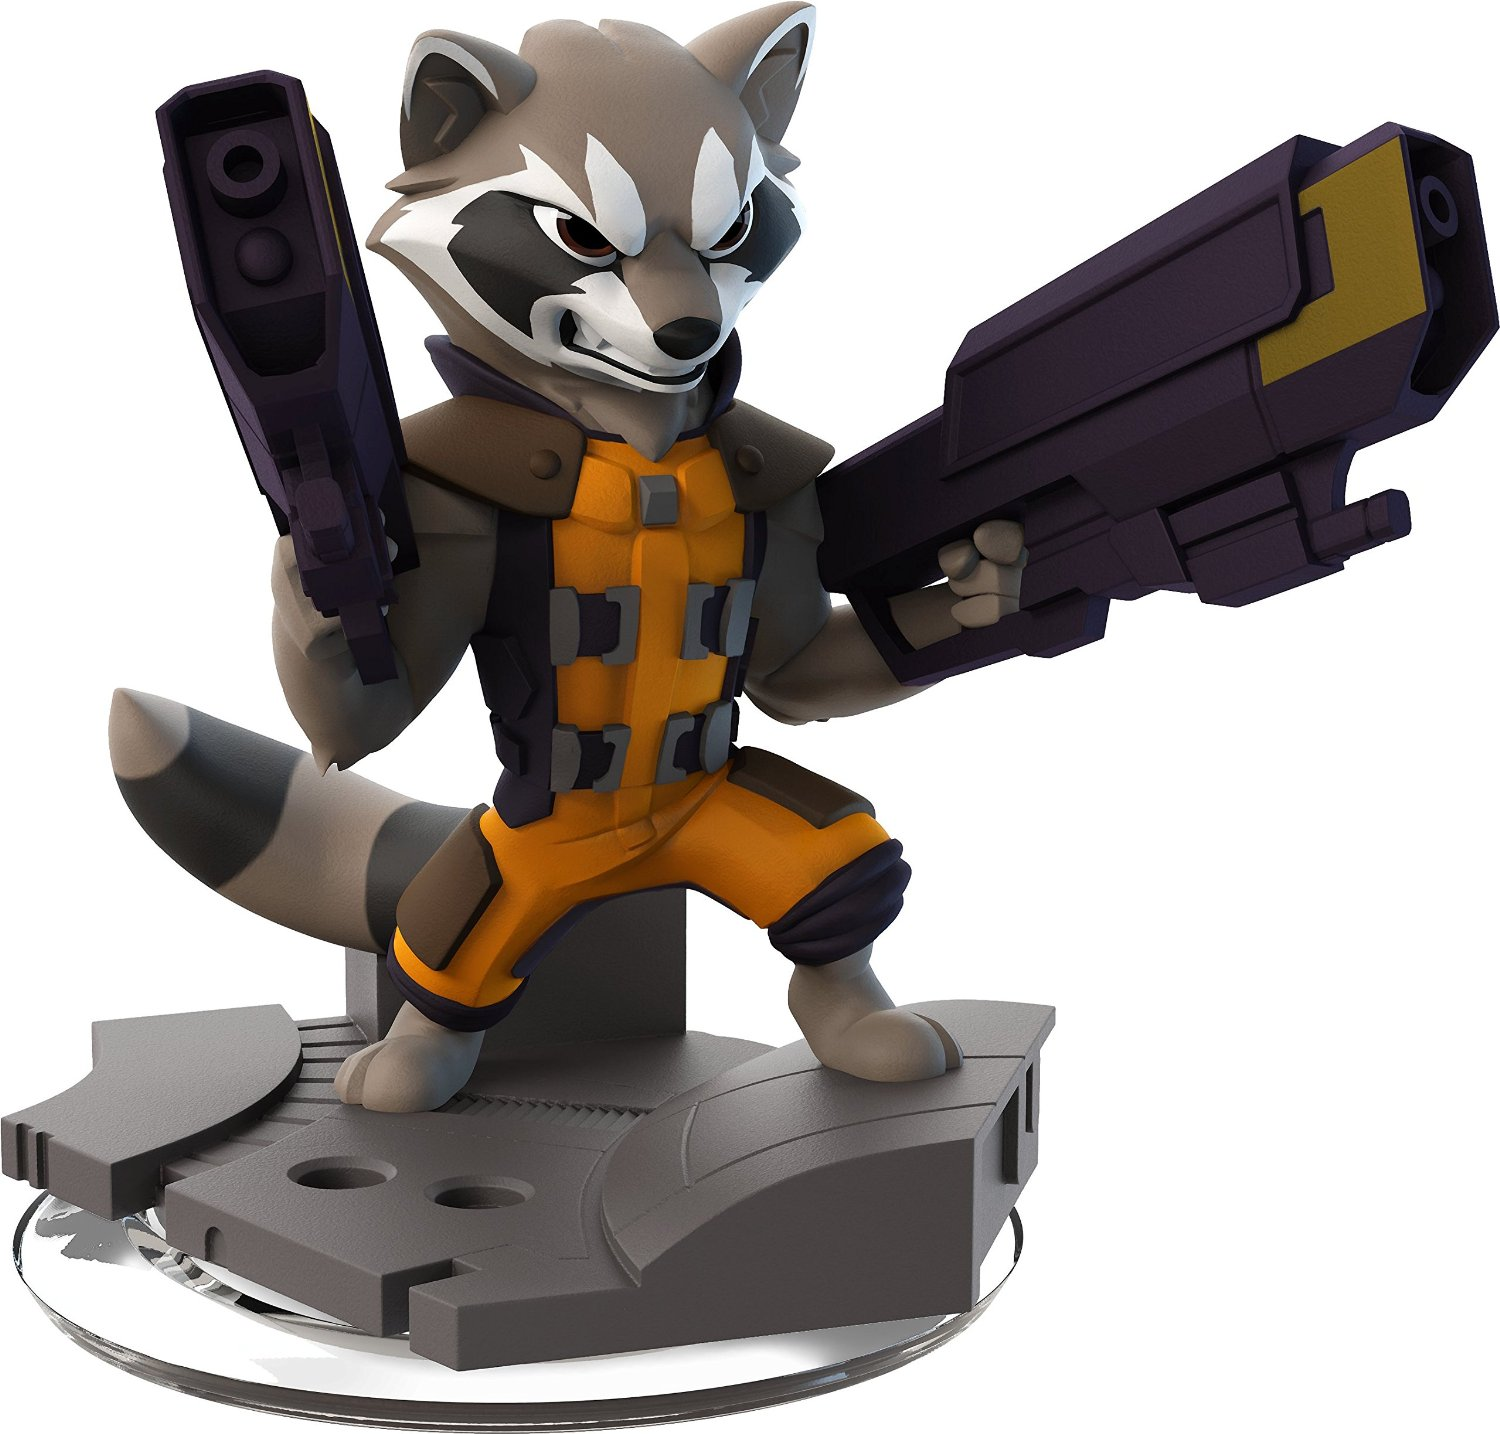 Disney Infinity 2.0: Rocket Raccoon, Игри за Nintendo Wii